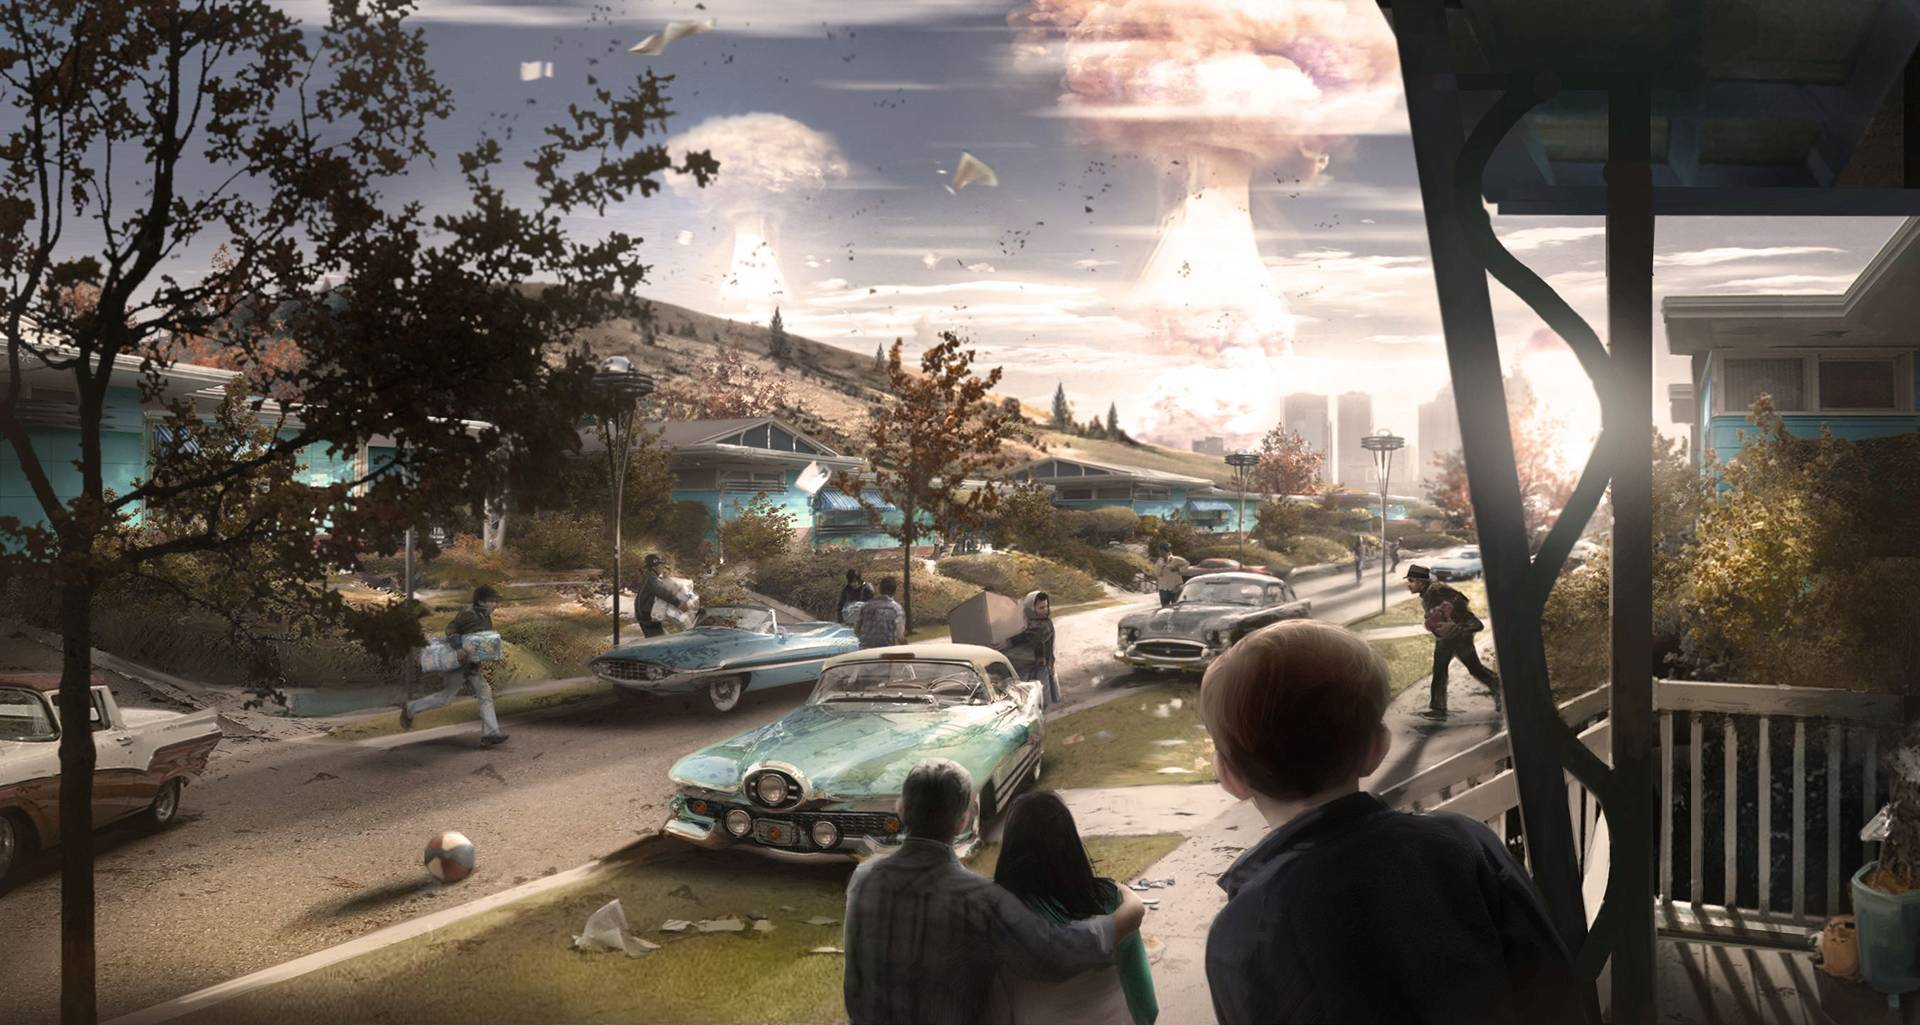 Fallout-4s-physical-PC-release-will-require-a-day-one-download-but-not-the-entire-game-Feature-Image